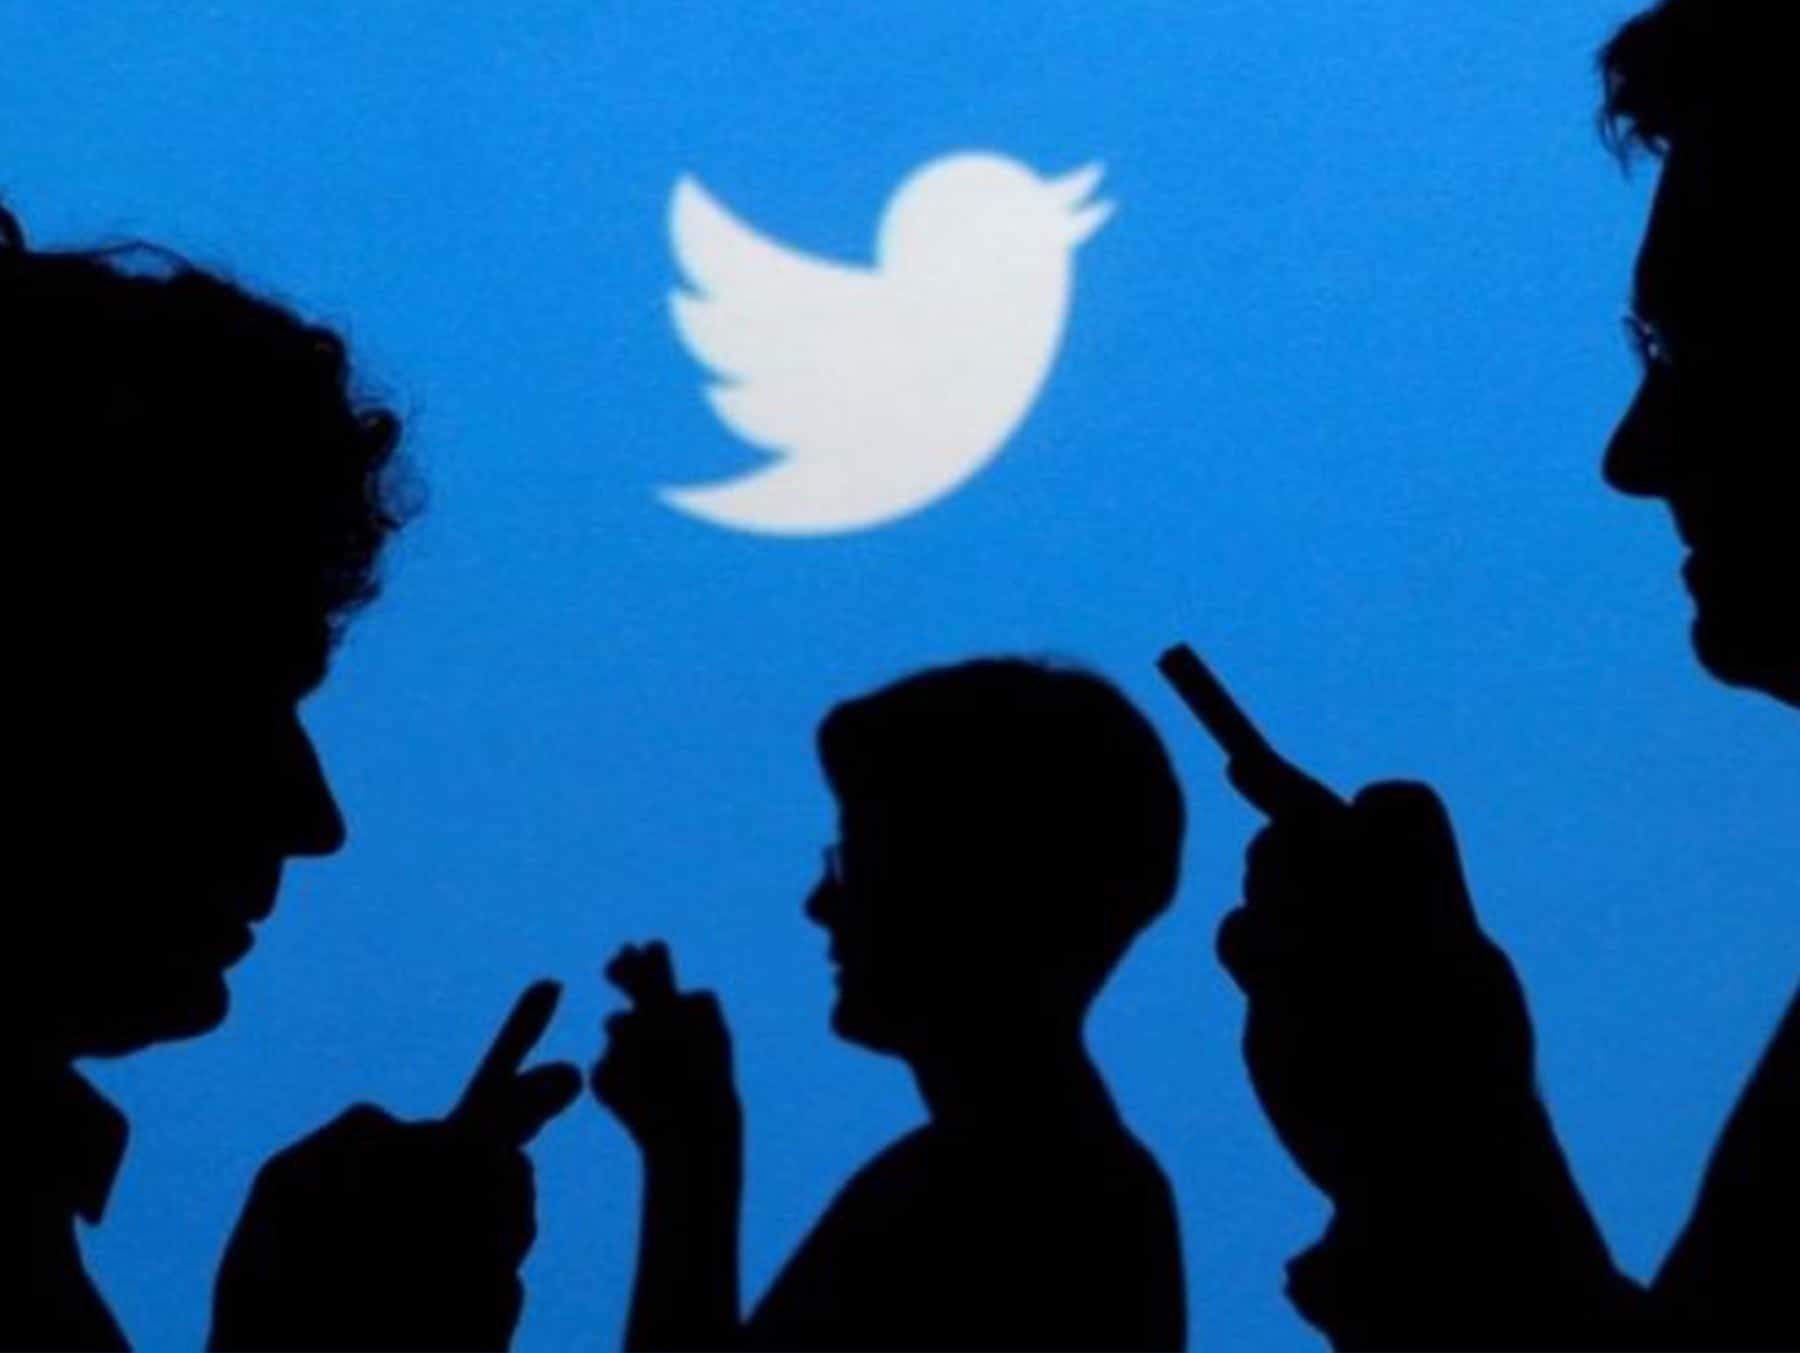 Twitters Video Website Card What Is It and How It Helps Twitter's Video Website Card – What Is It and How It Helps?